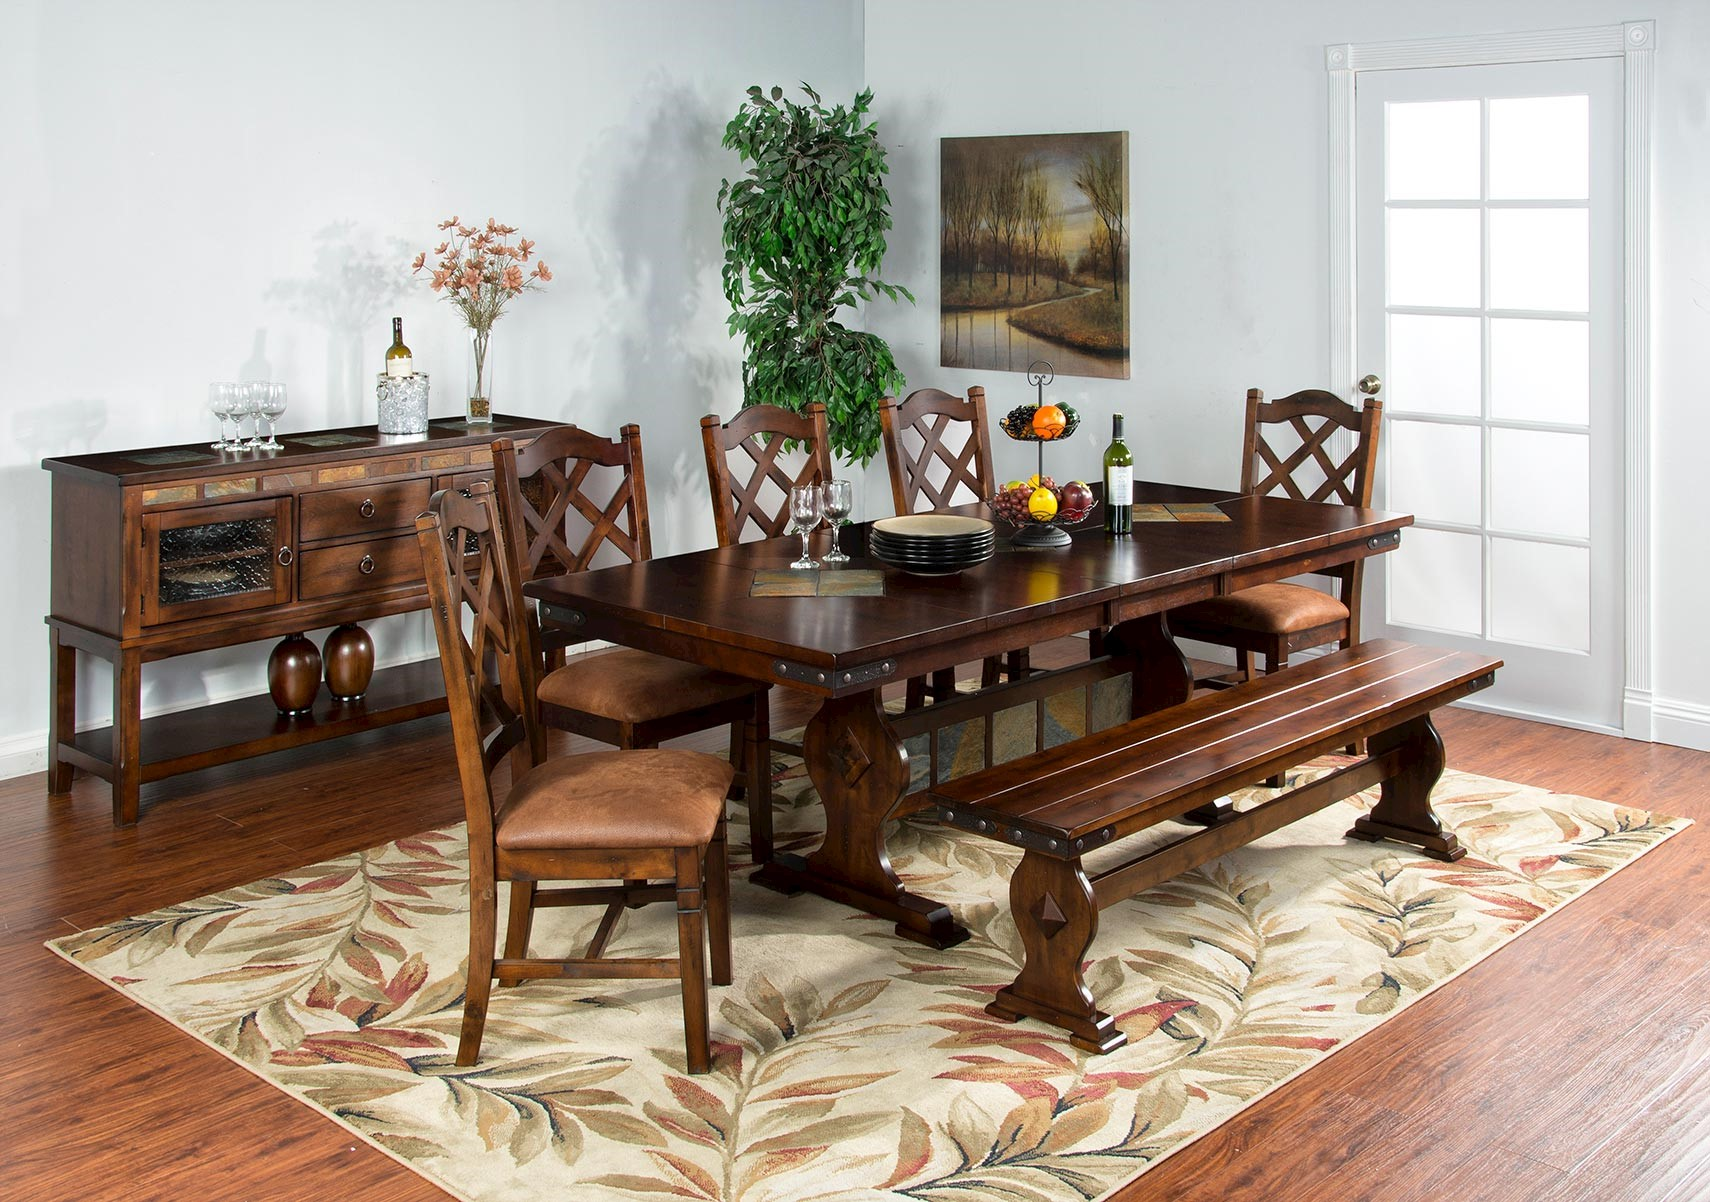 Lacks Santa Fe 6 Pc Trestle Table Dining Set